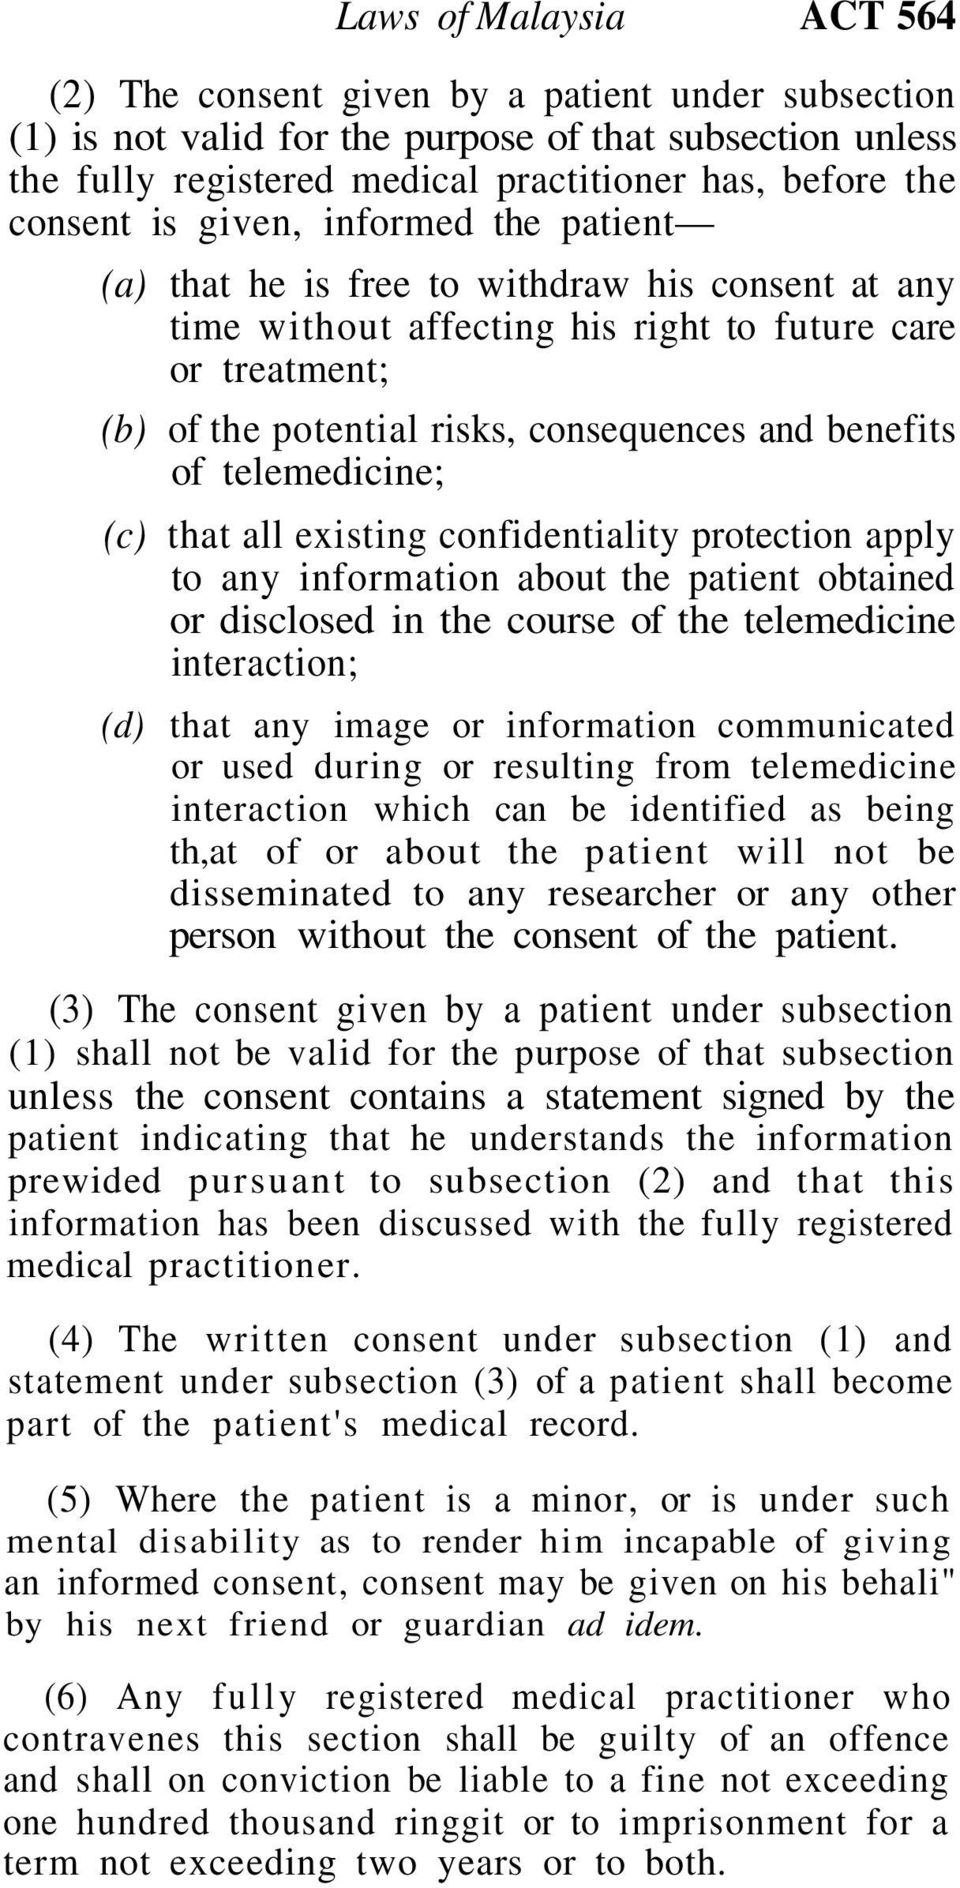 benefits of telemedicine; (c) that all existing confidentiality protection apply to any information about the patient obtained or disclosed in the course of the telemedicine interaction; (d) that any